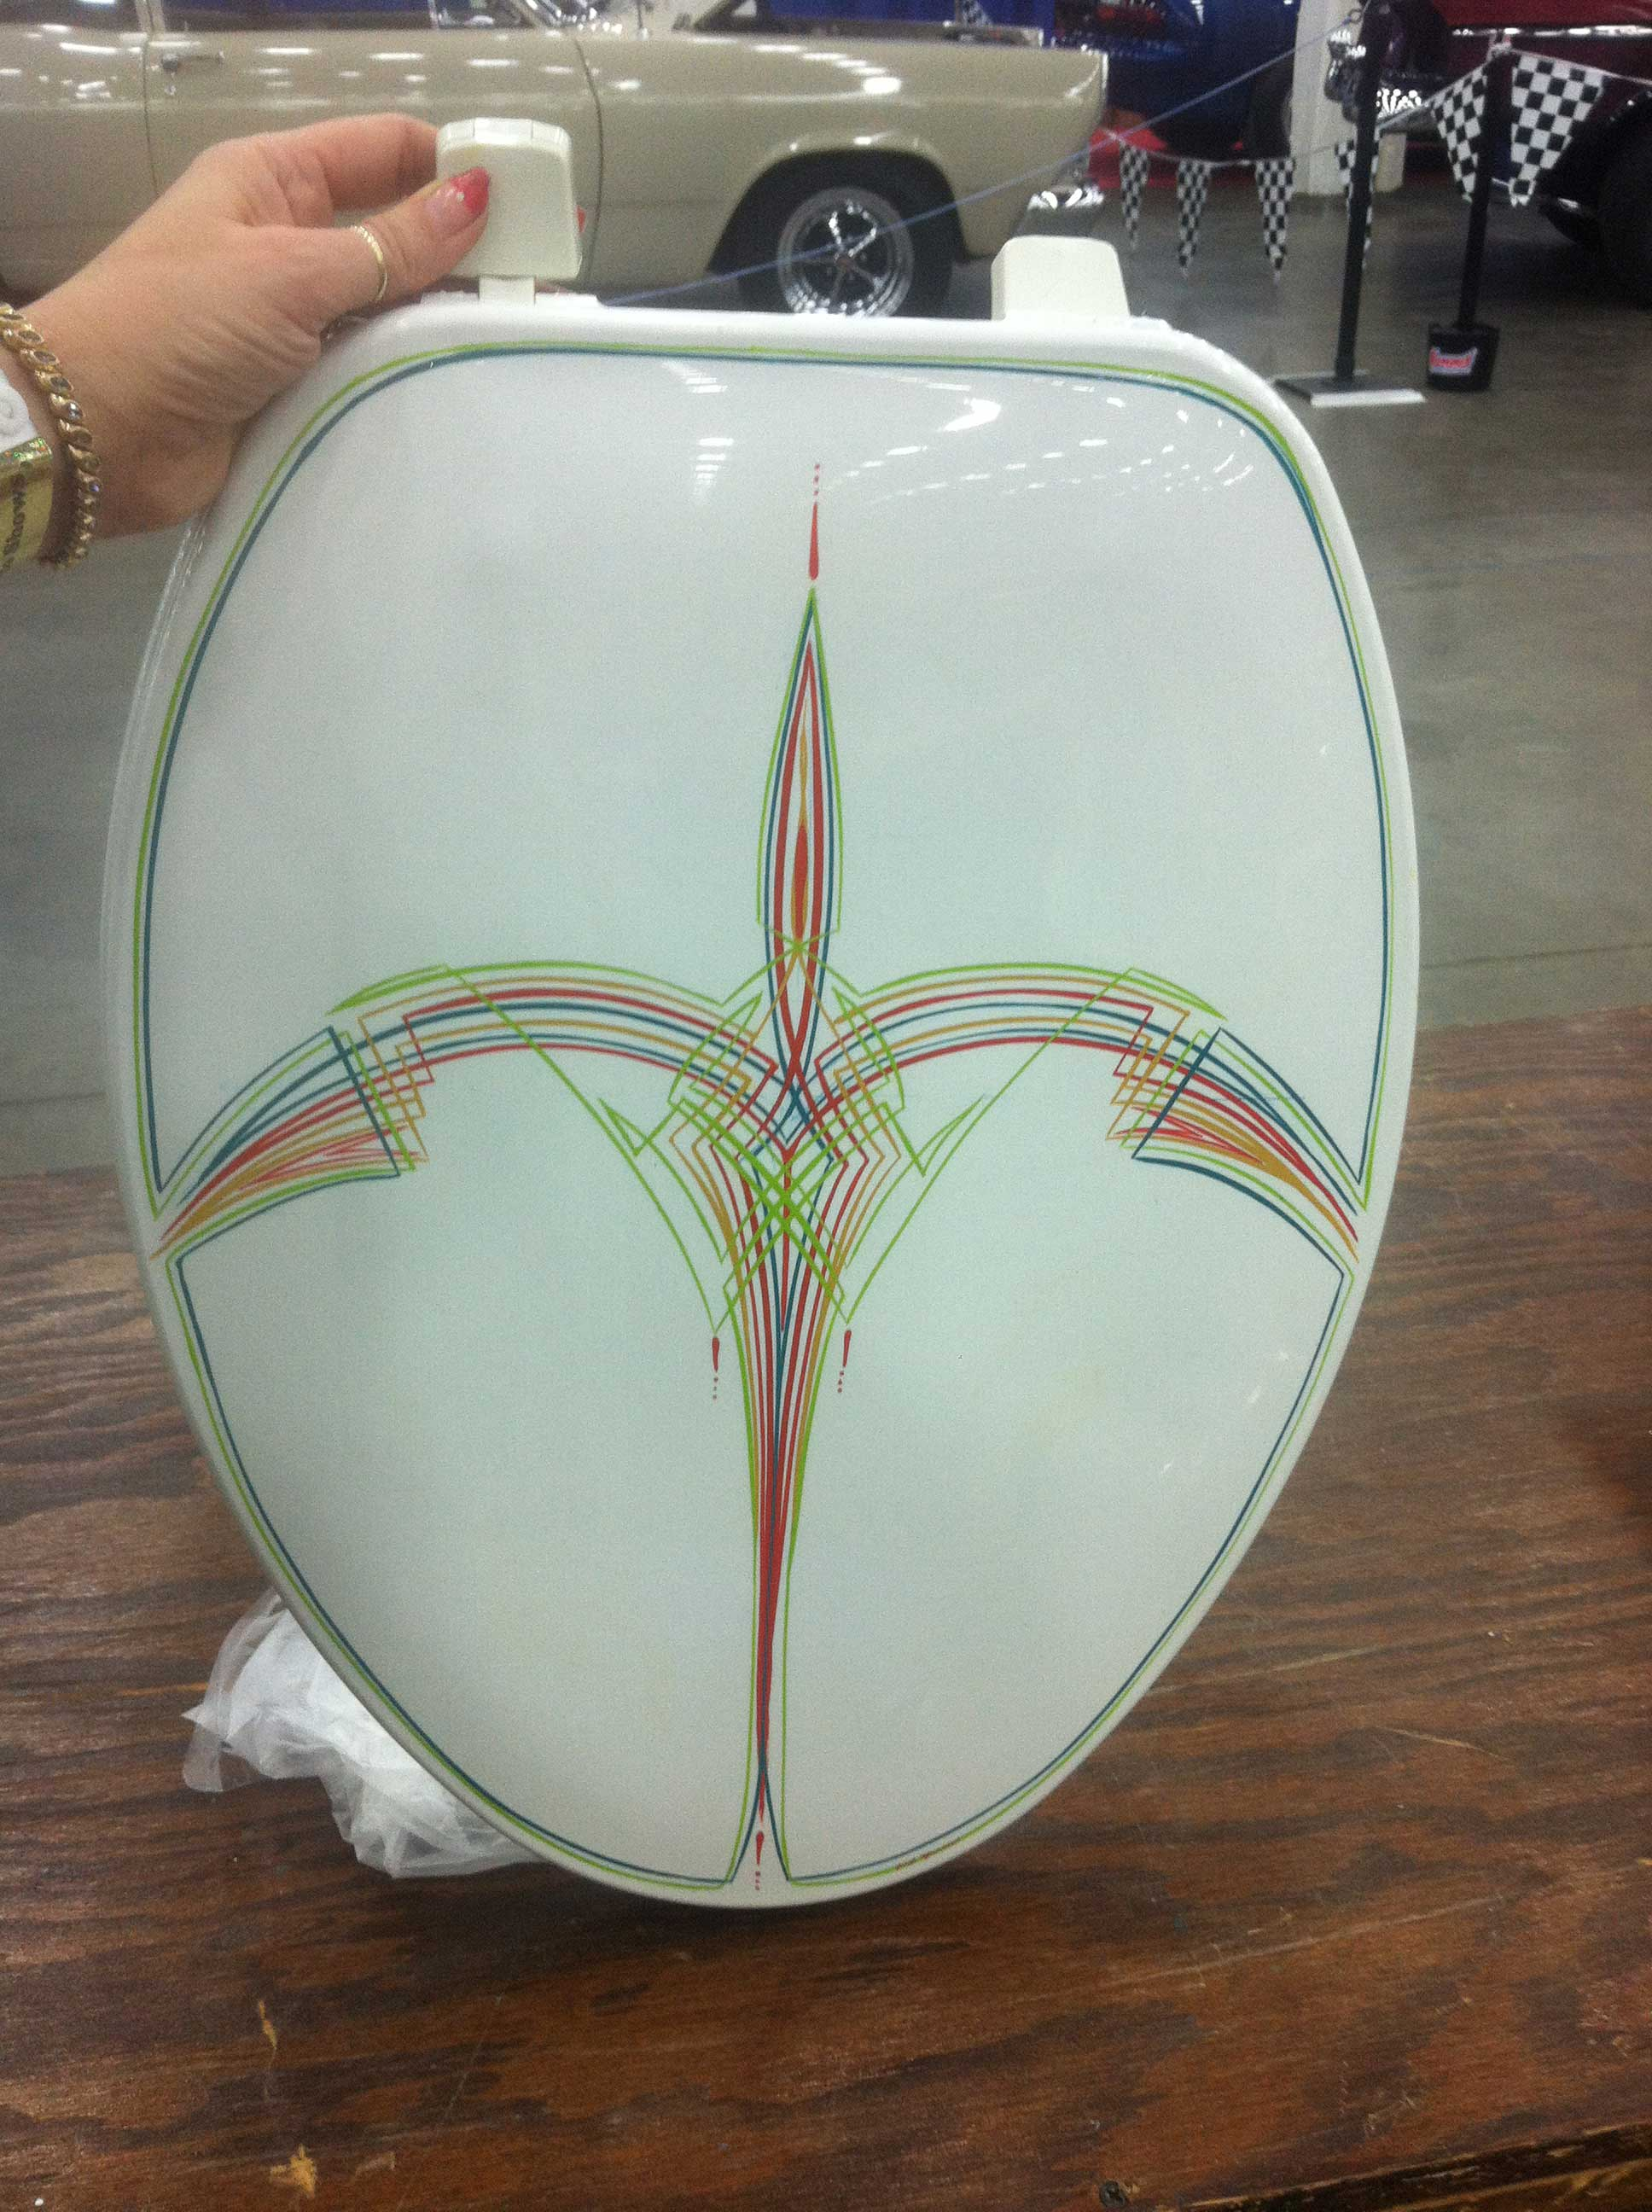 Pinstriped toilet seat by Julie Fournier